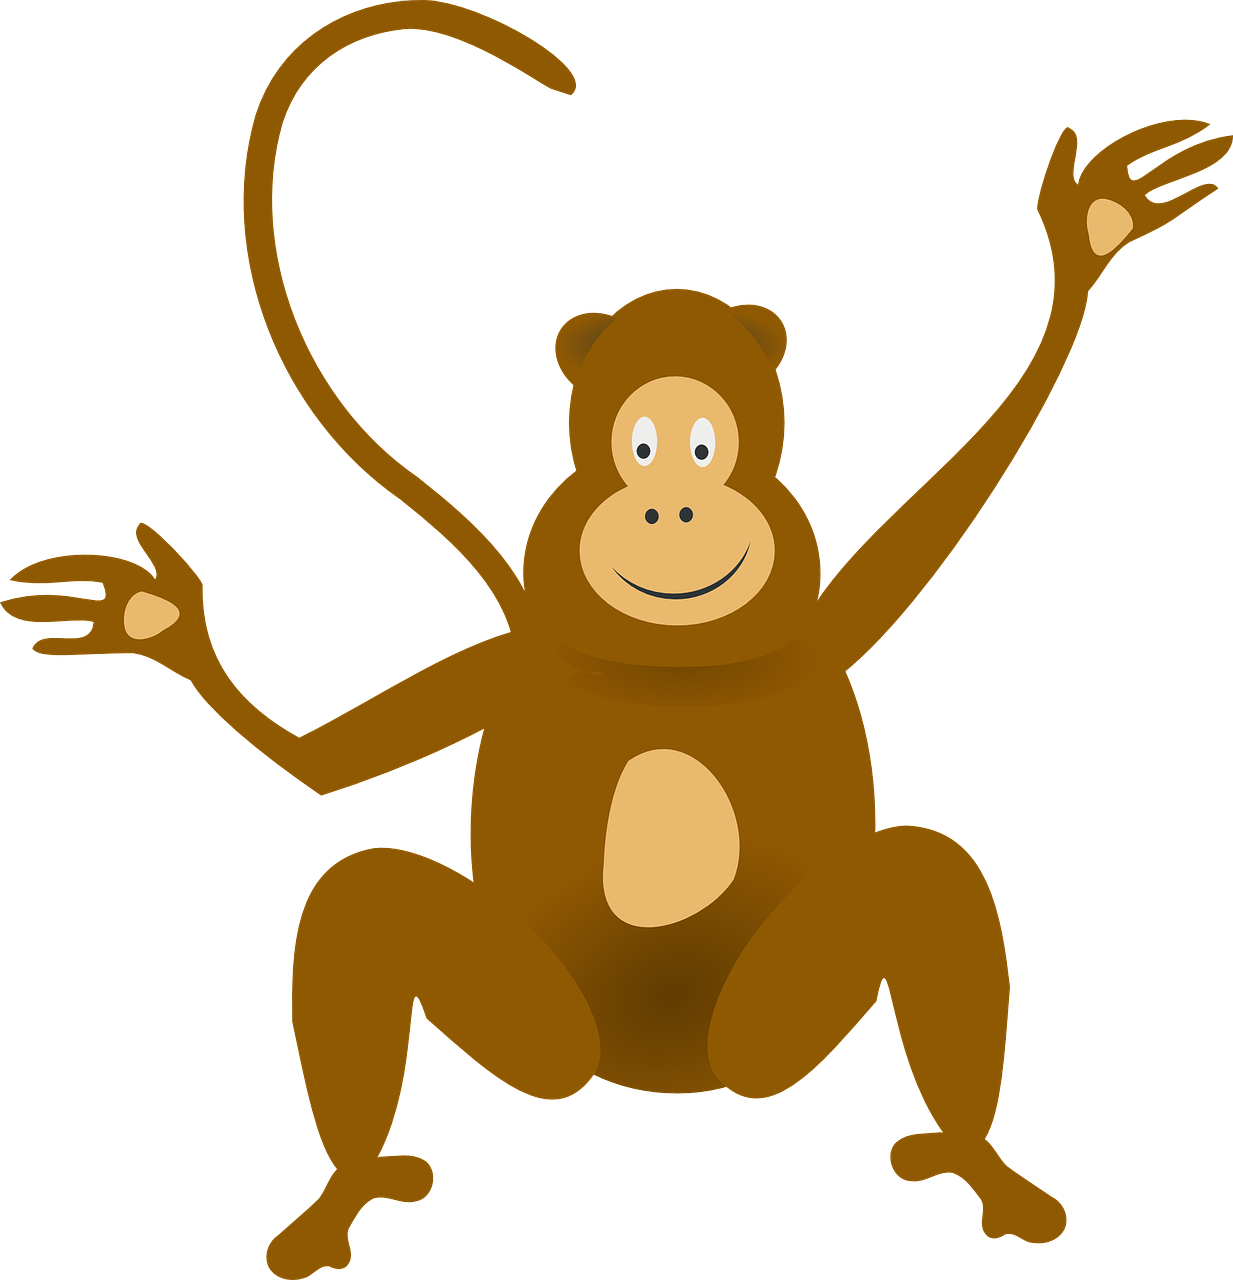 svg Monkey Jungle Ape Clip art